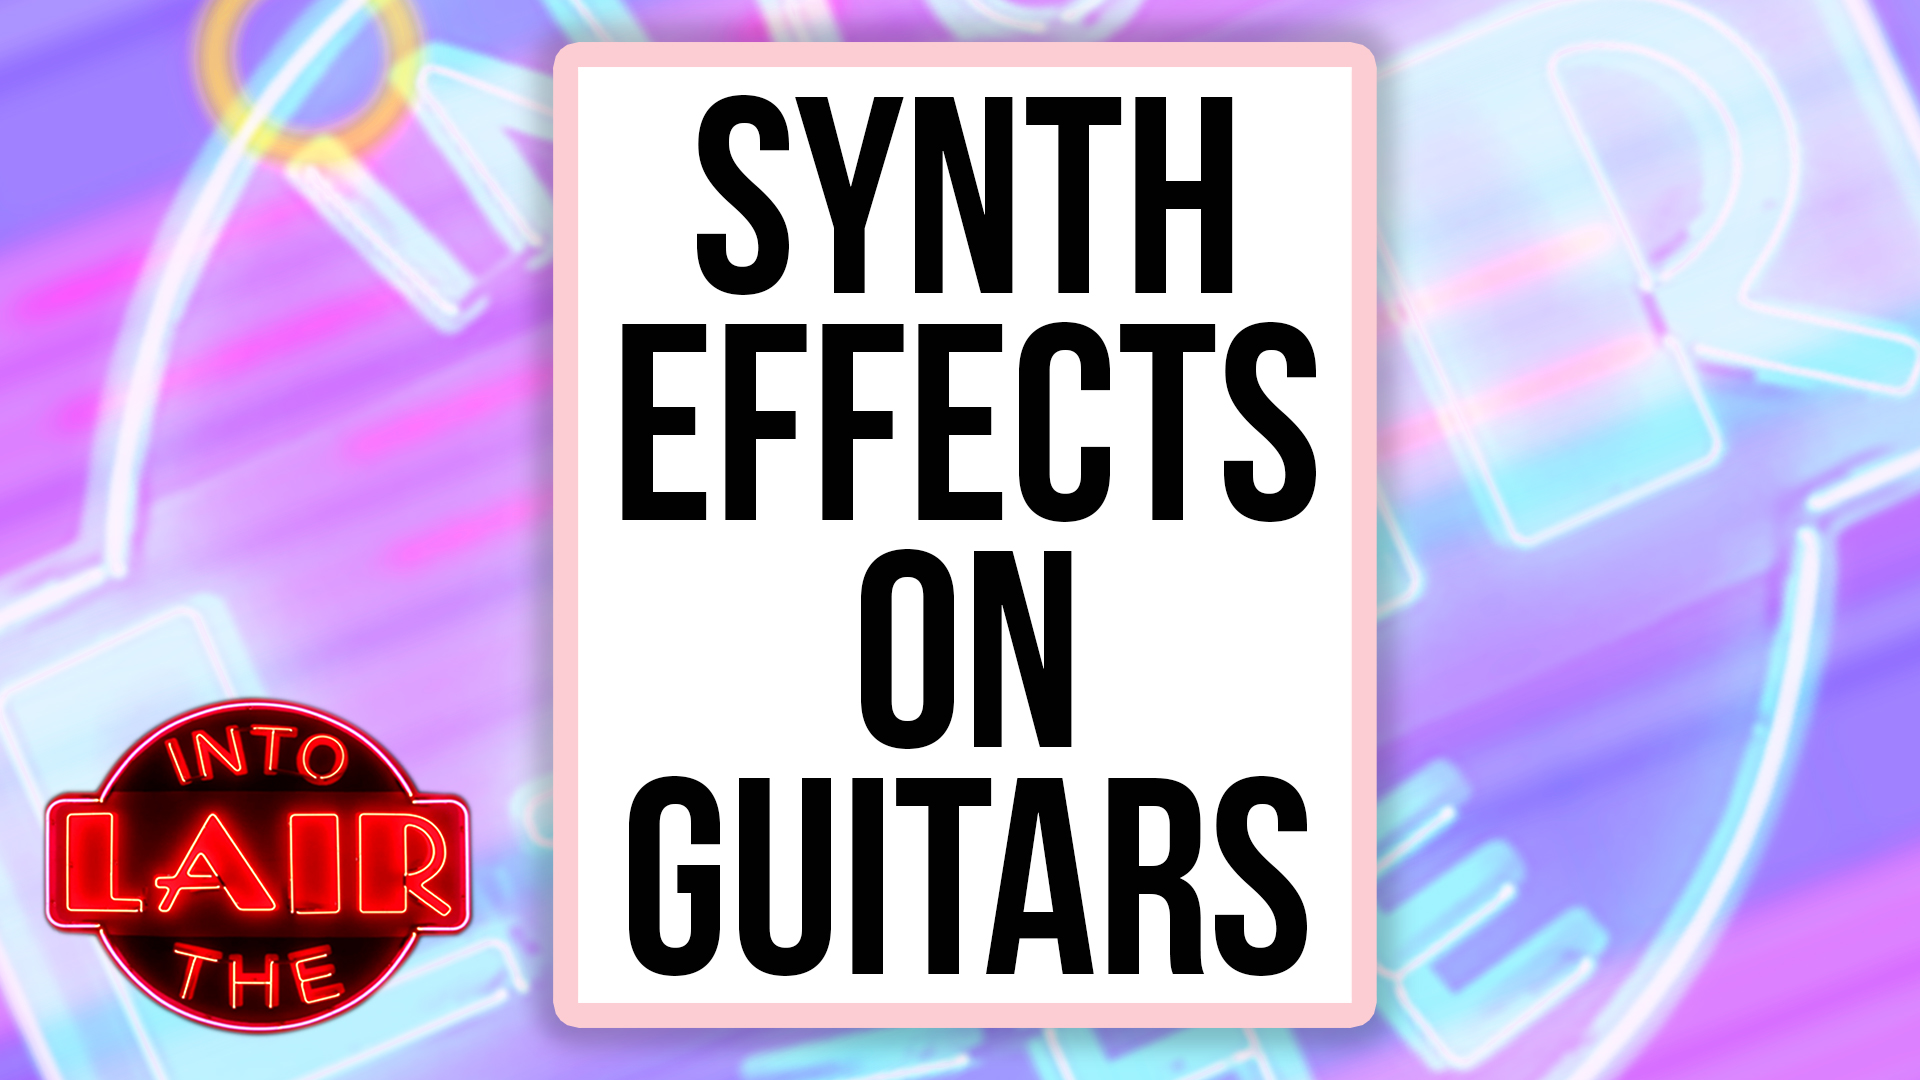 Synth Effects on Guitars